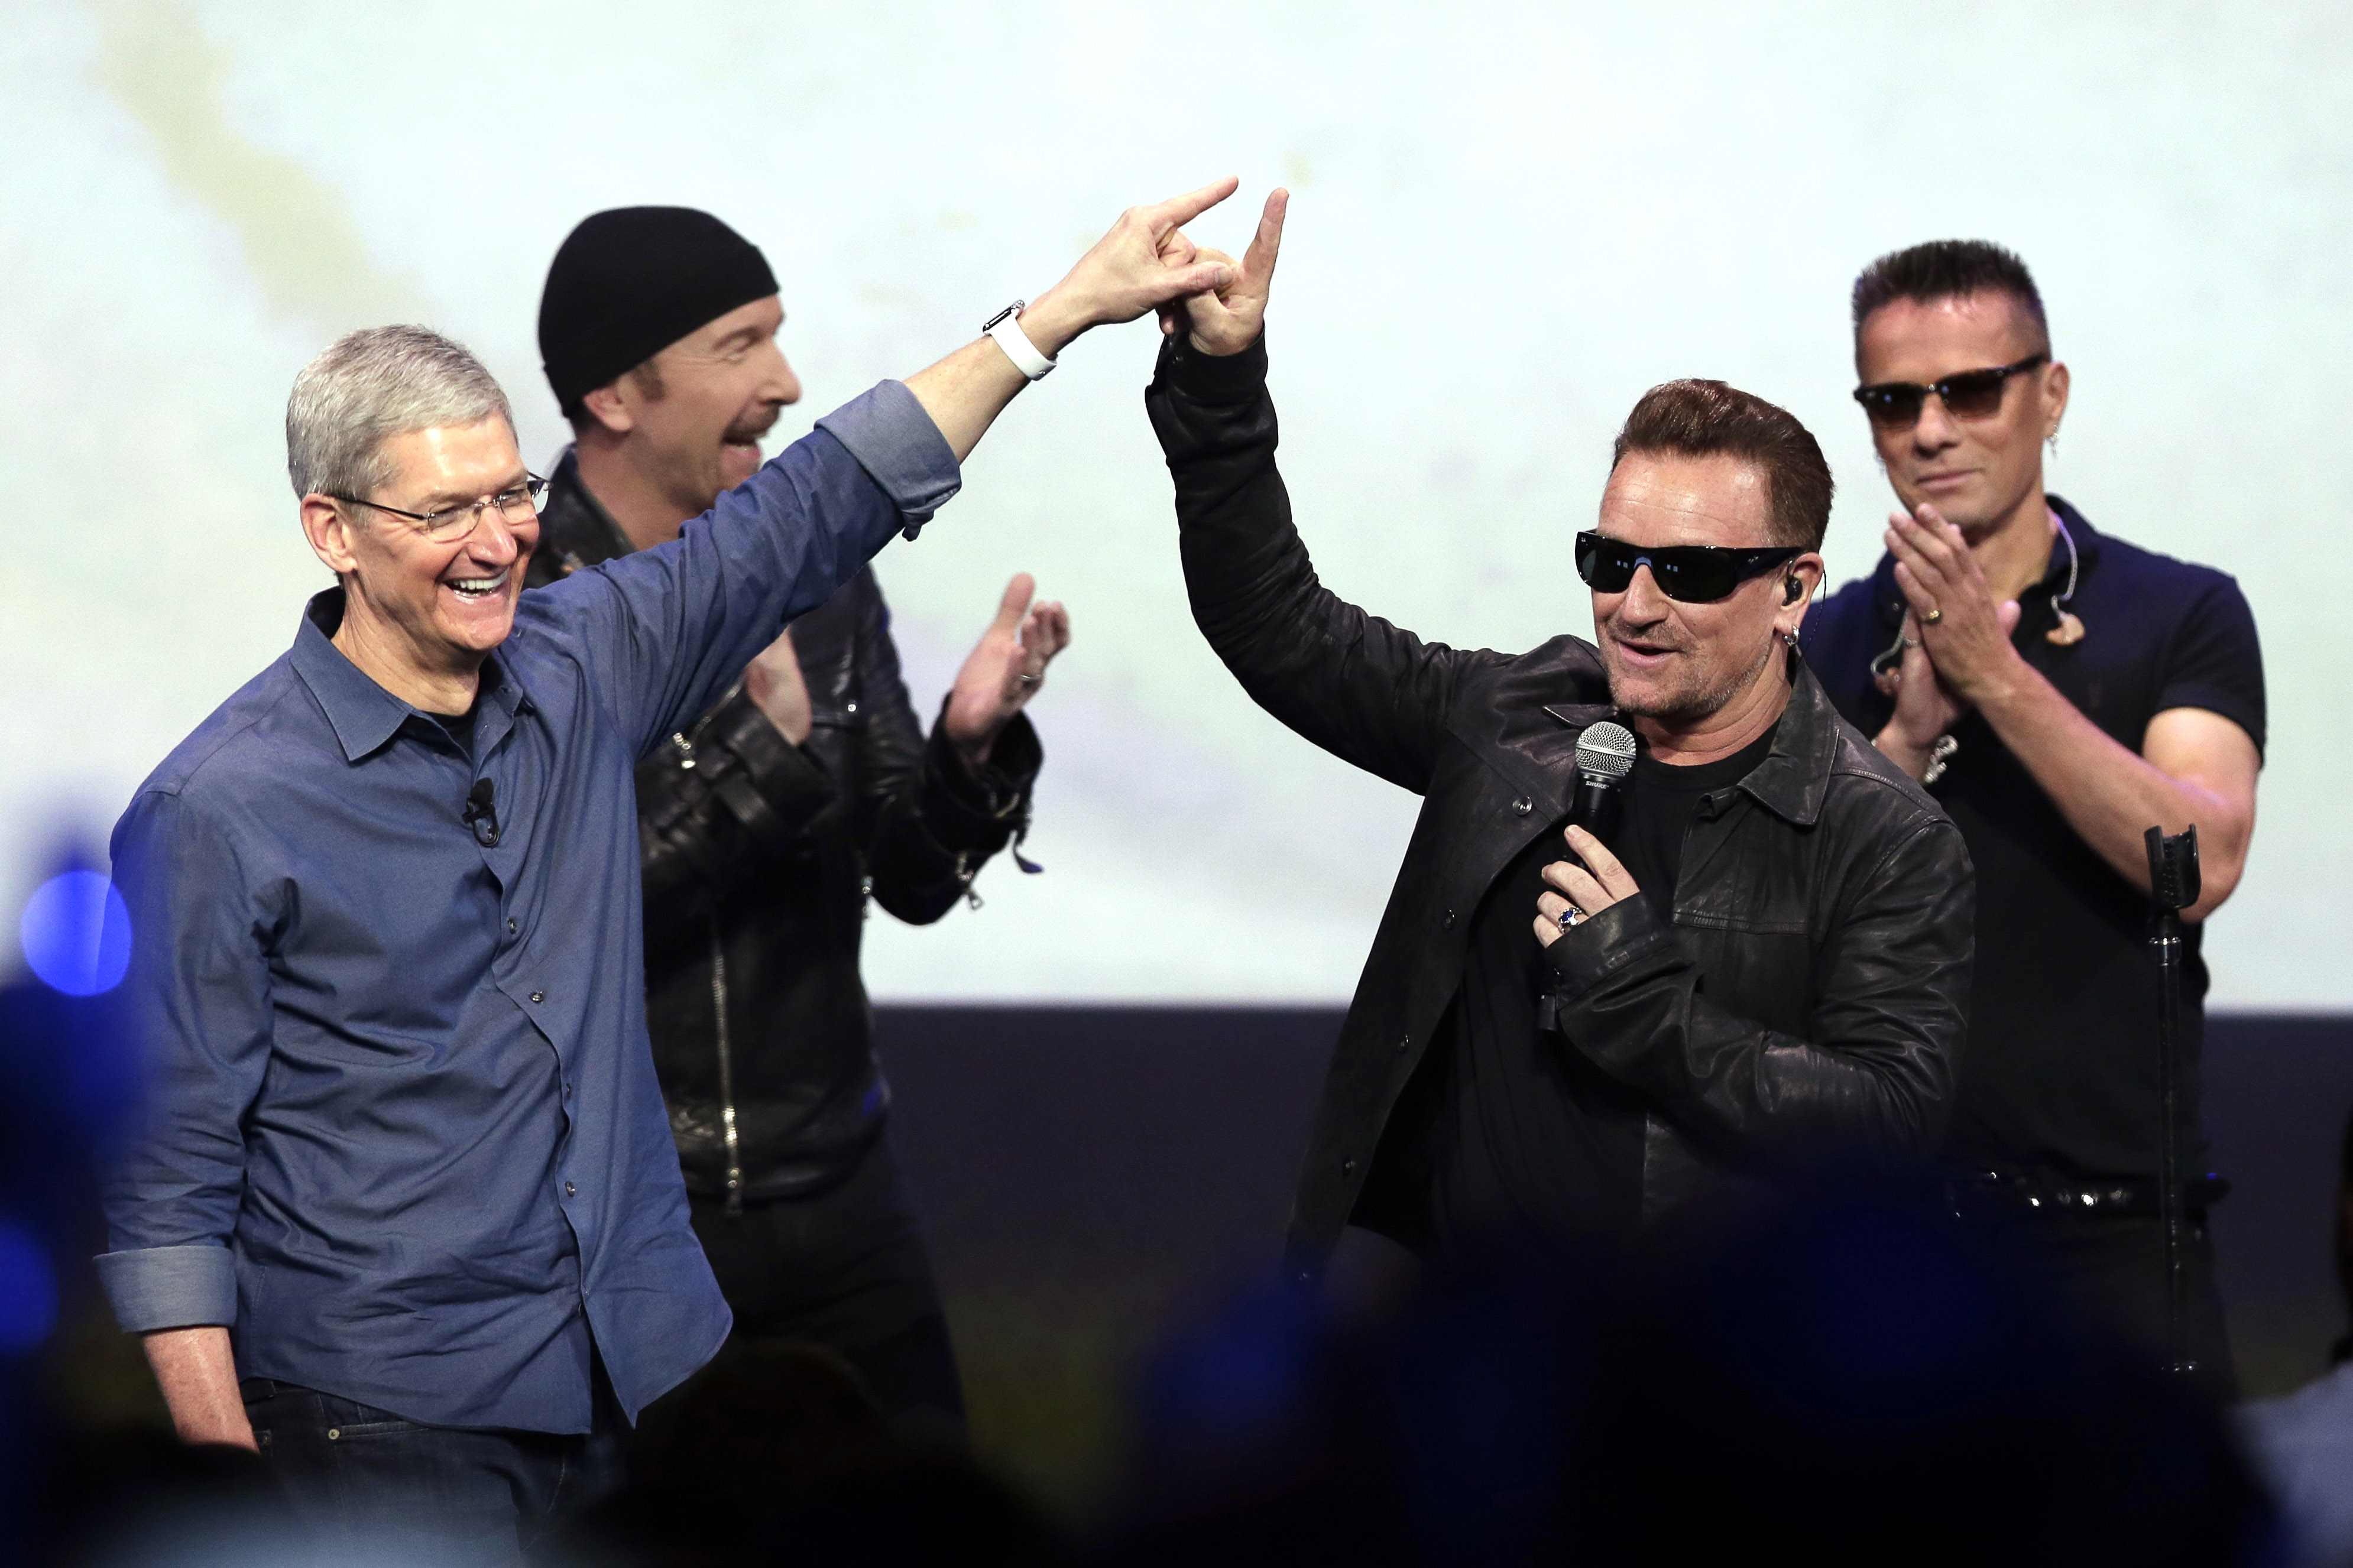 Apple CEO Tim Cook, left, greets Bono from the band U2 after they preformed at the end of the Apple event on Tuesday, Sept. 9, 2014, in Cupertino, Calif. Apple unveiled a new Apple Watch, the iPhone 6 and Apple Pay. (AP Photo/Marcio Jose Sanchez)